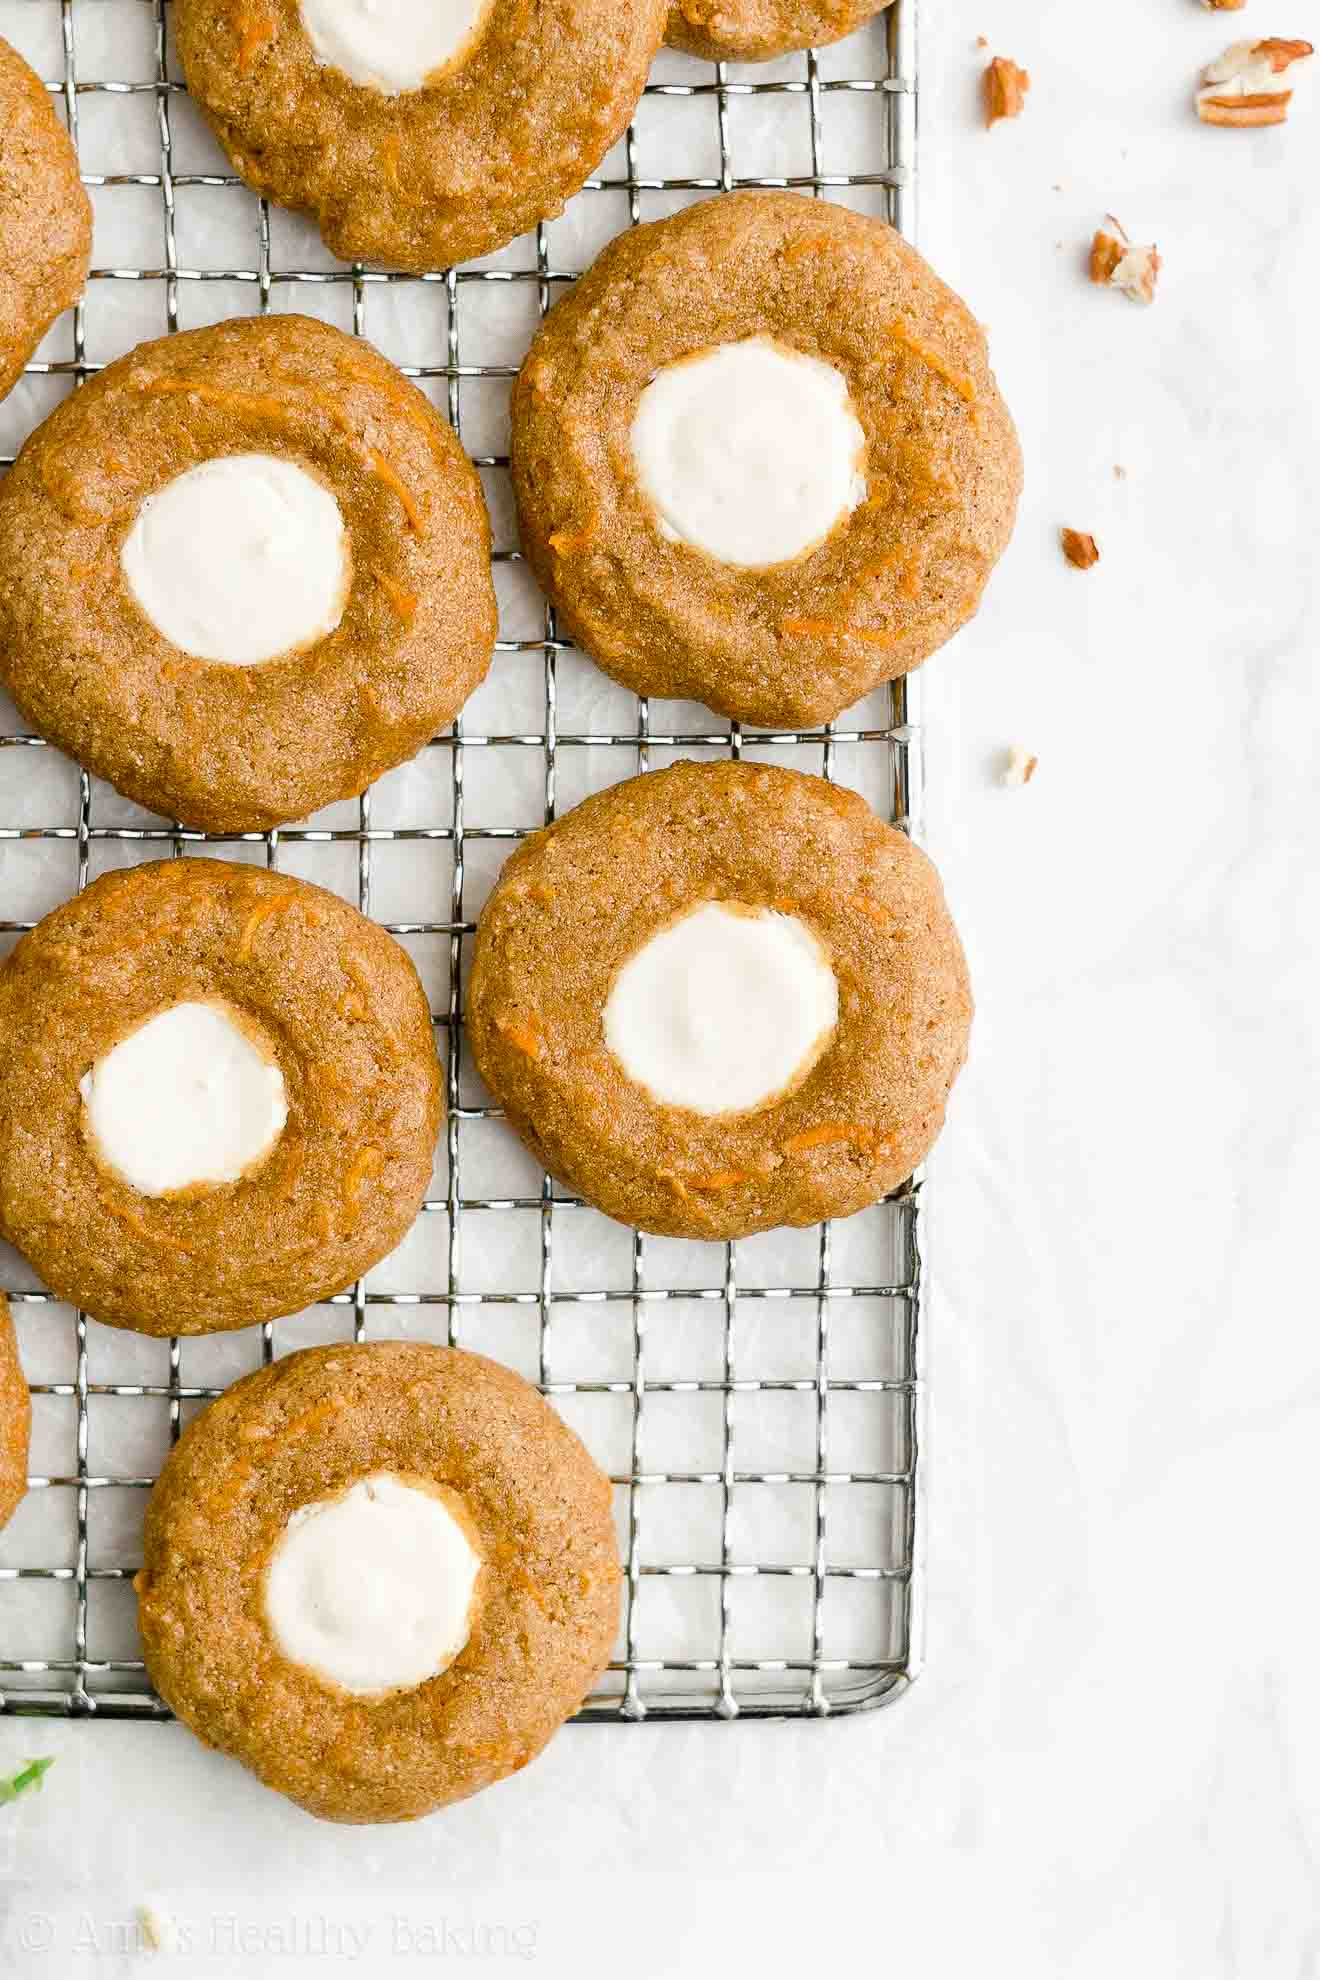 Best Healthy Low Fat Gluten Free Soft Chewy Carrot Cake Thumbprint Cookies